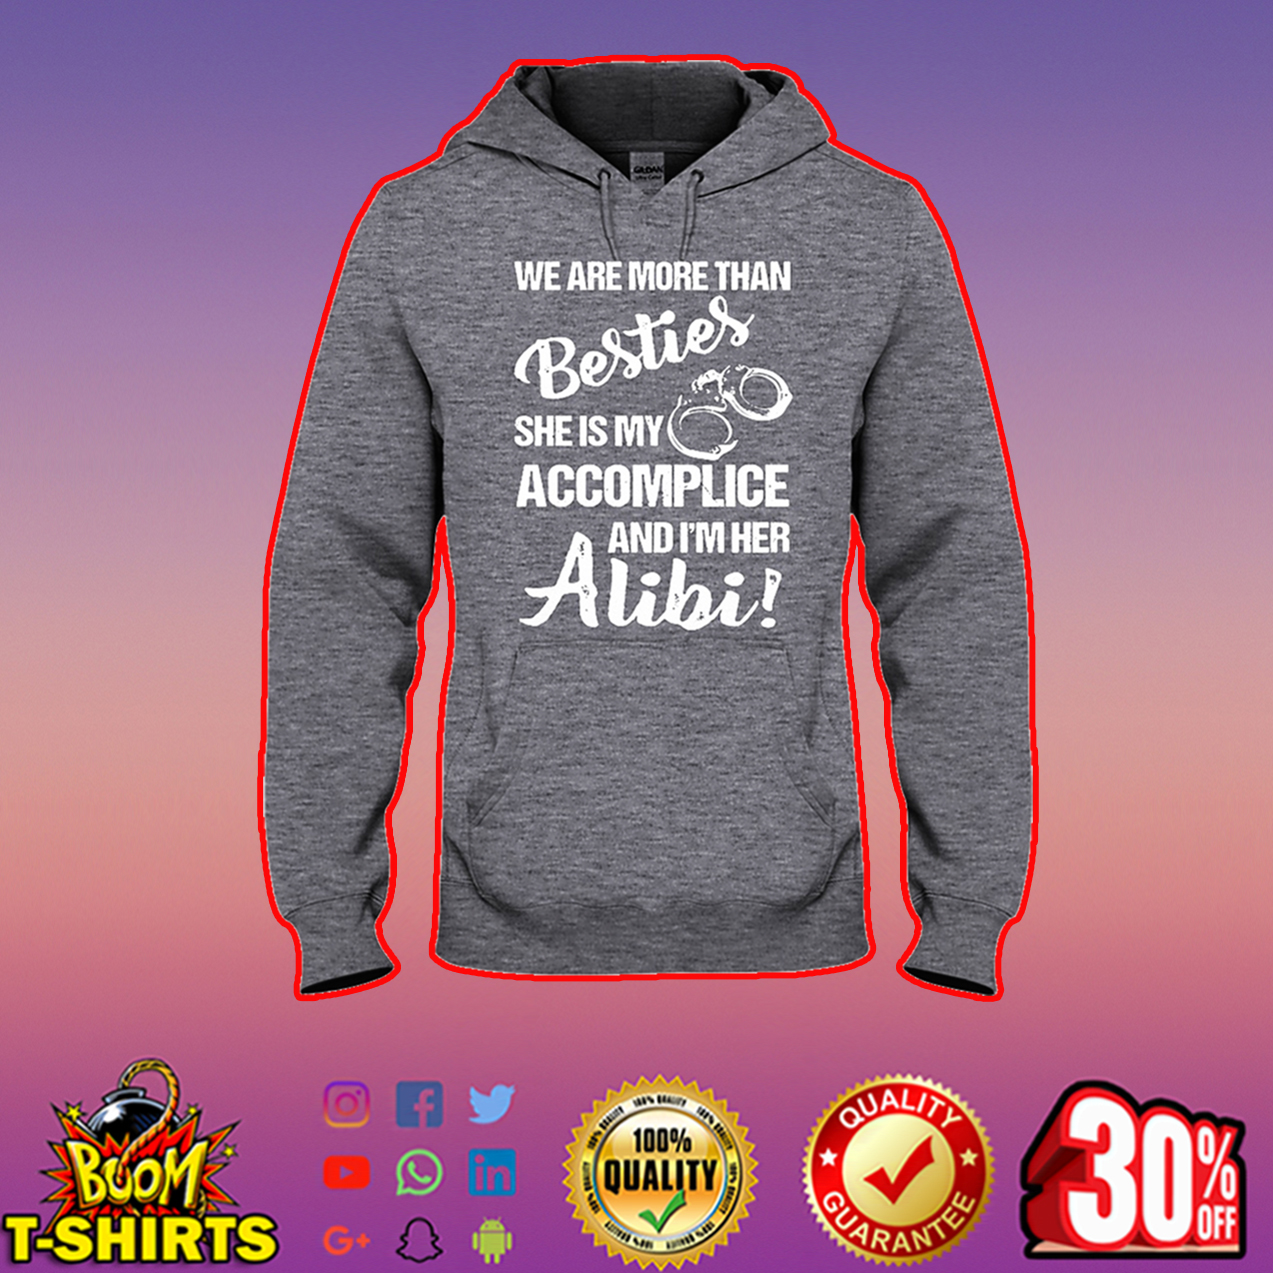 We are more than besties she is my accomplice and I'm her alibi hooded sweatshirt